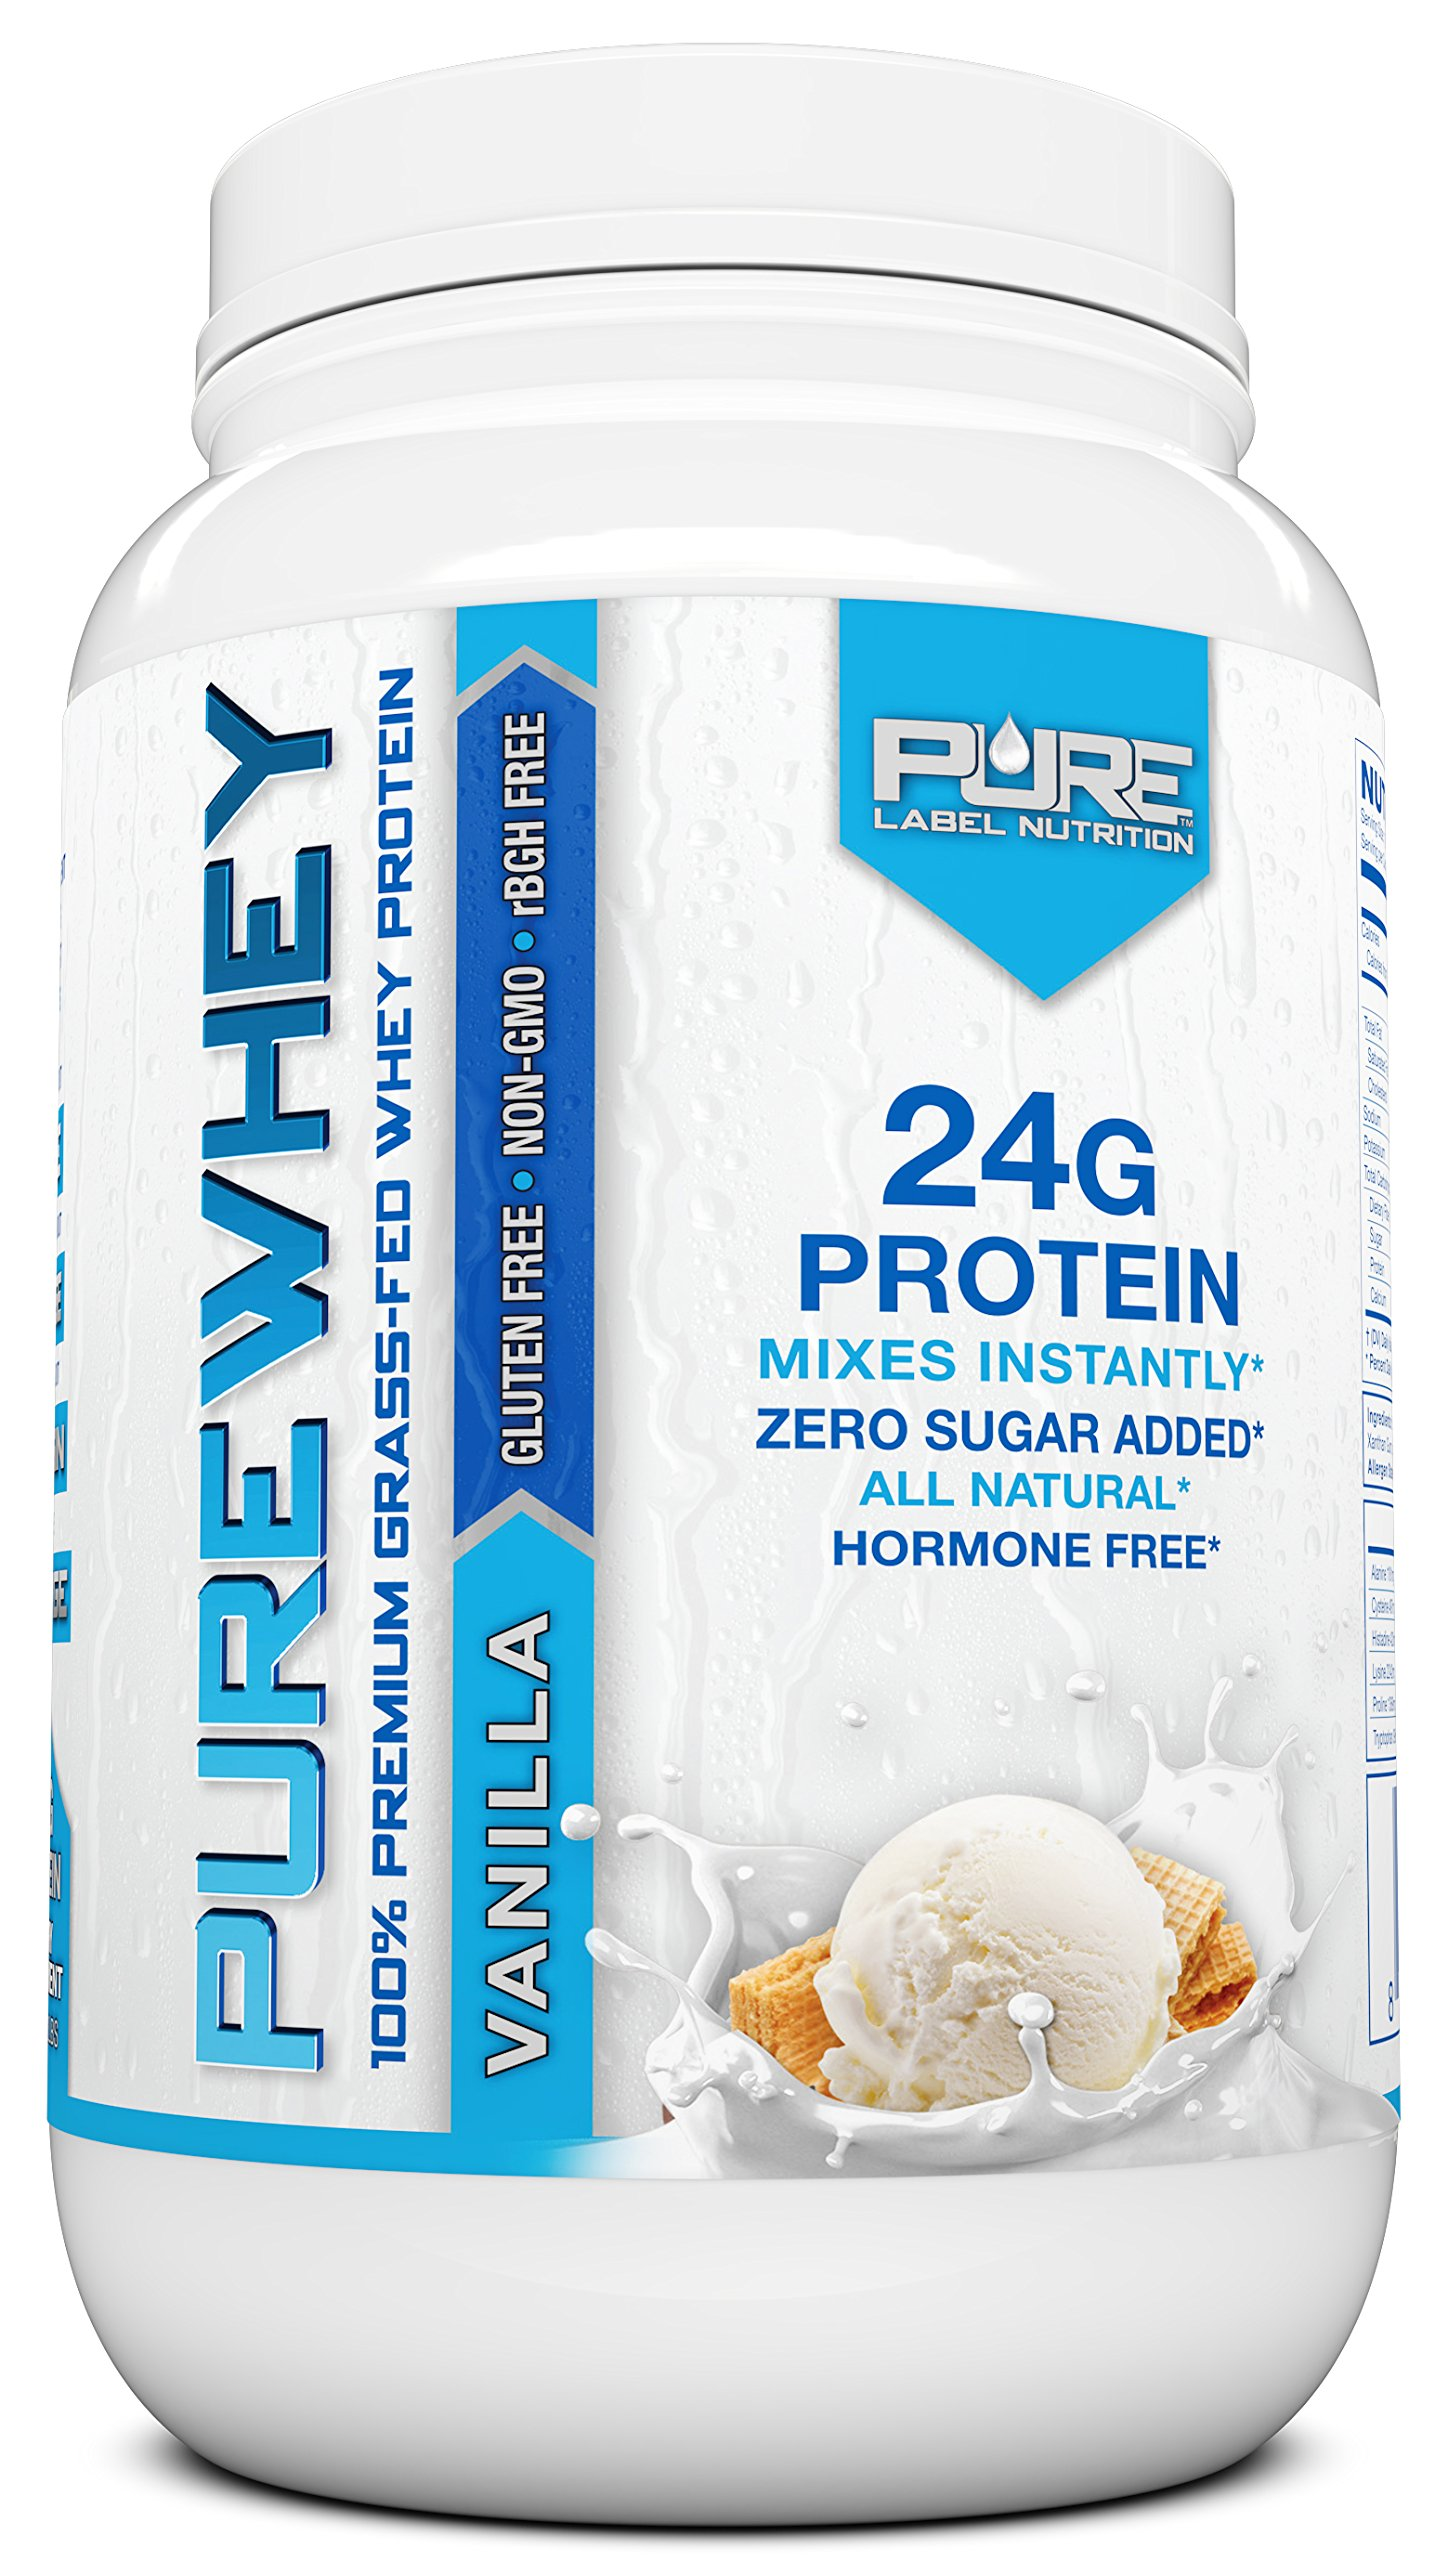 Grass Fed Whey Protein Powder   Vanilla 2lb Whey from Grass Fed California Cows   100% Natural Whey w/ No Added Sugars   rBHG Free + GMO-Free + Gluten Free + Preservative Free   PURE Whey